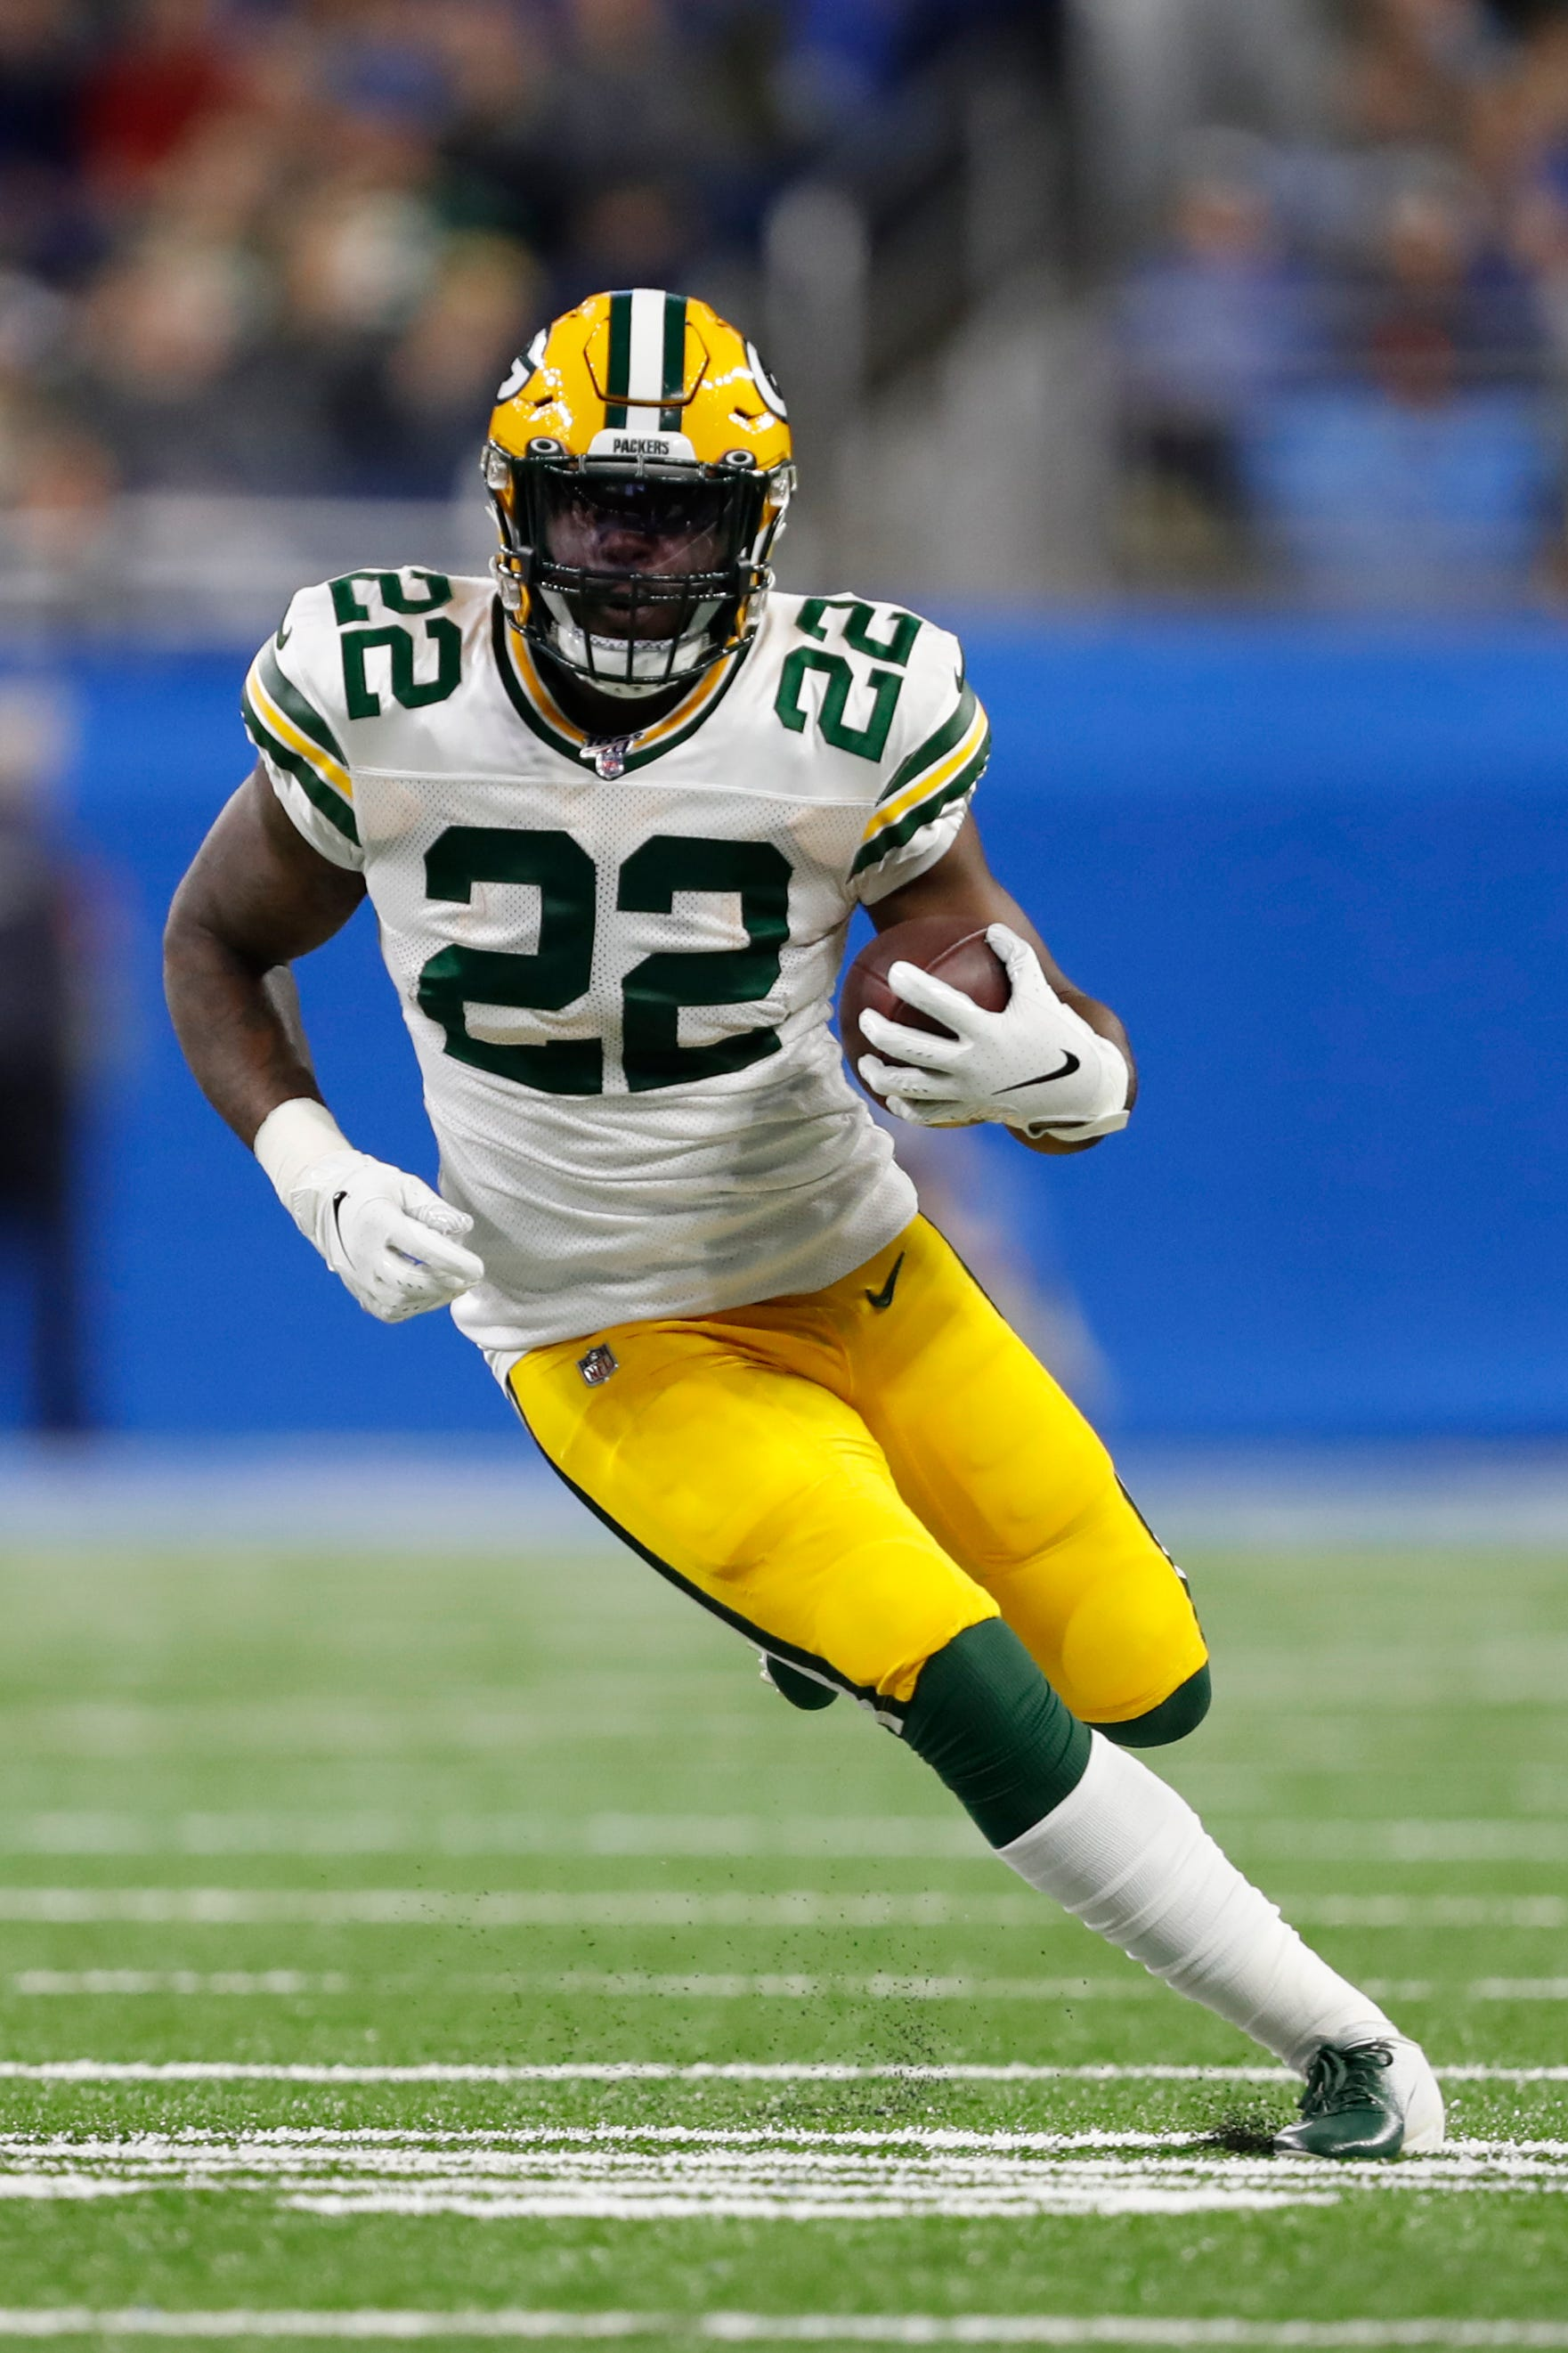 Packer: Dexter Williams contending with crowded backfield